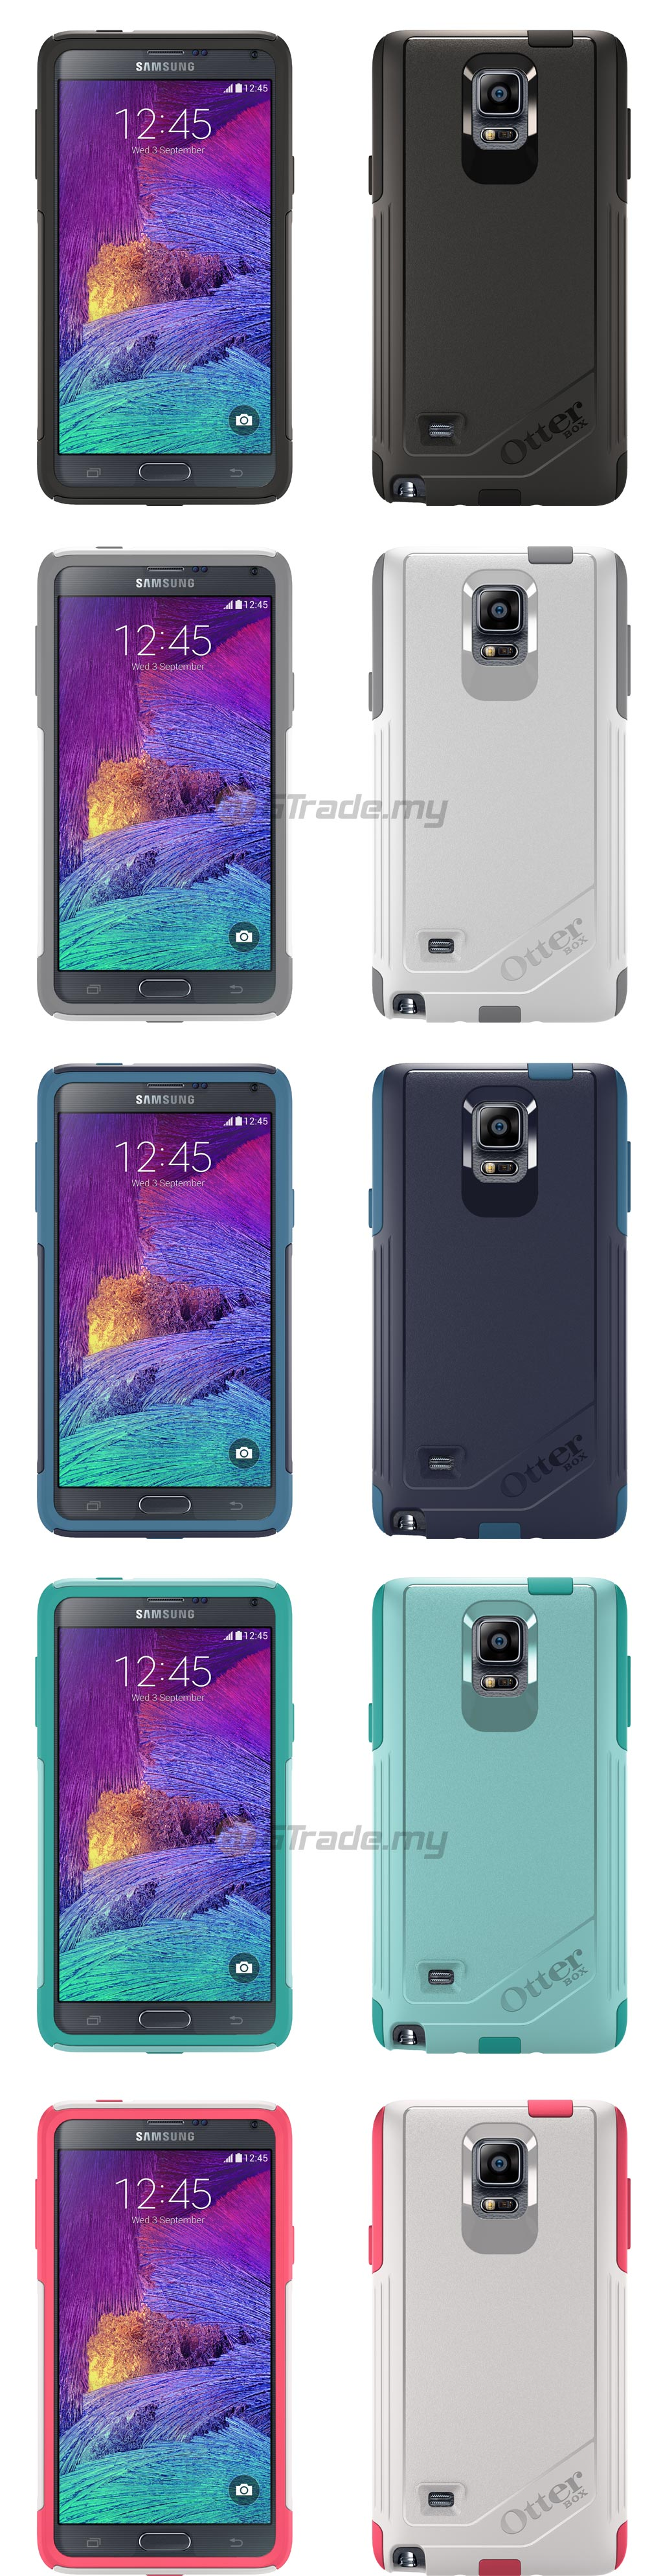 otterbox-commuter-bump-drop-scrape-protect-case-samsung-galaxy-note-4-p